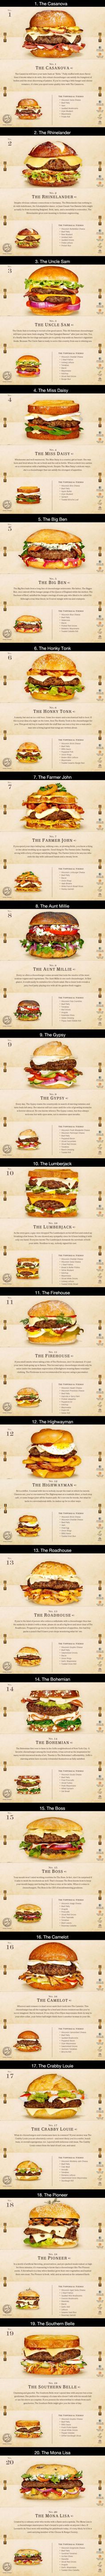 Loaded, gourmet burgers that are easy to put together and are delicious to eat!